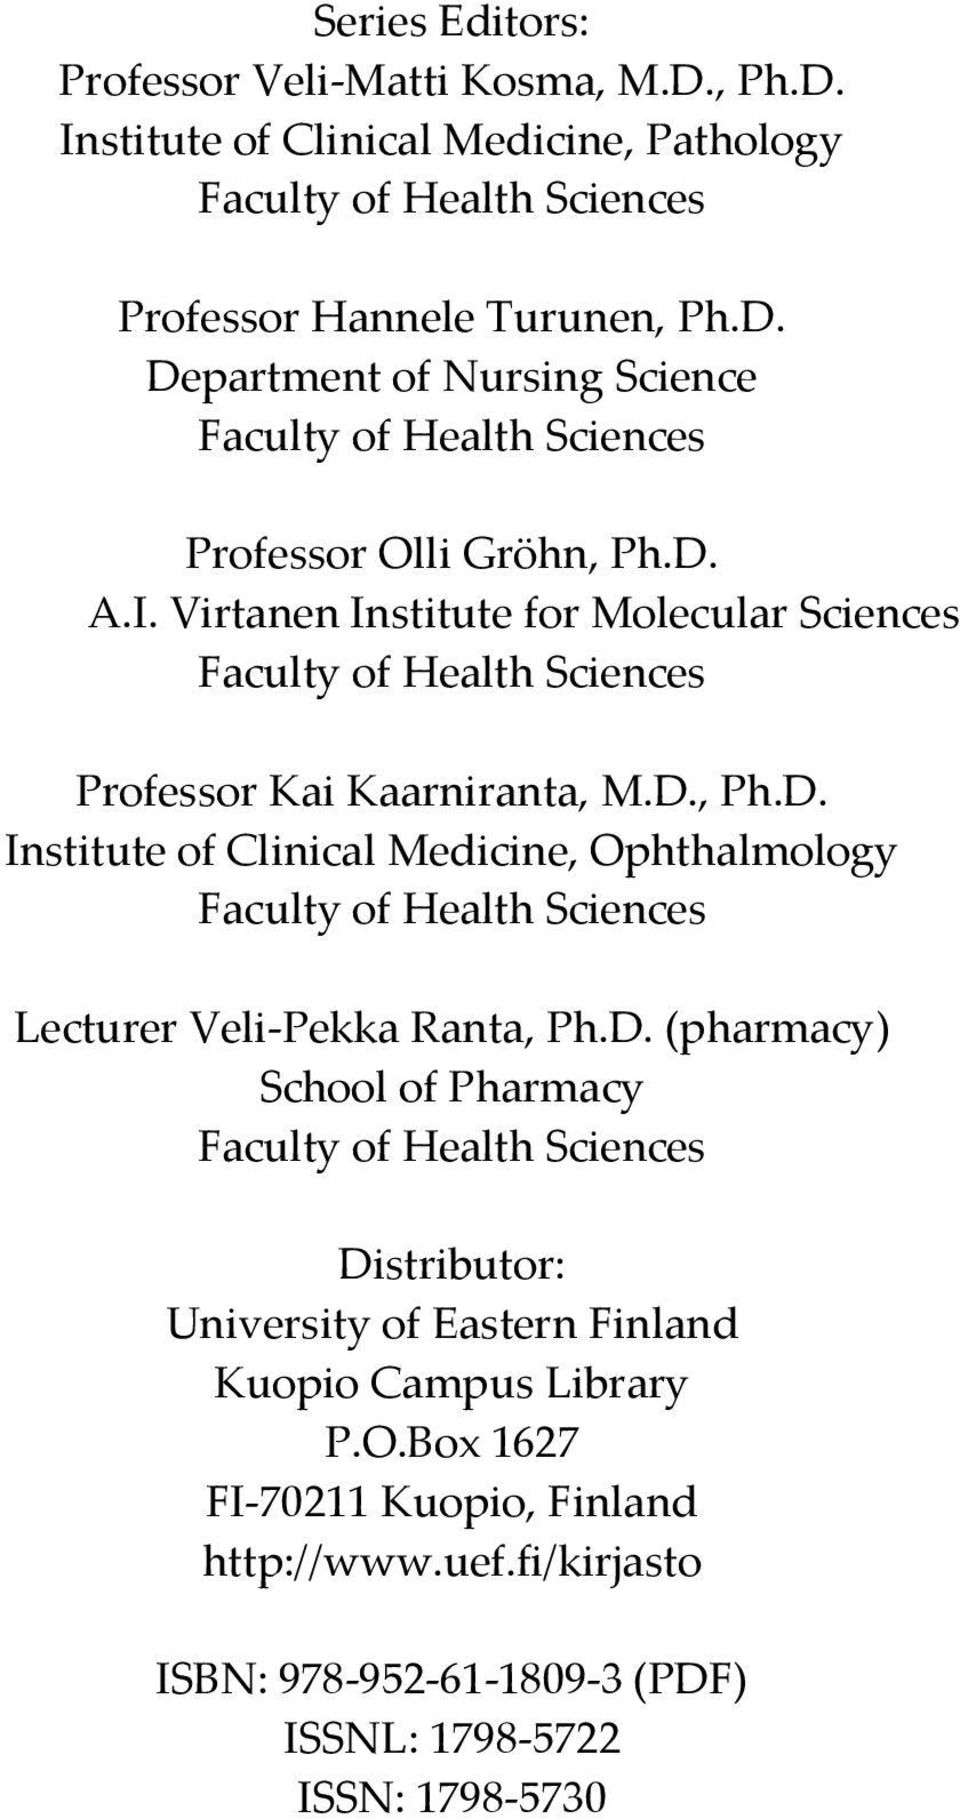 D. (pharmacy) School of Pharmacy Faculty of Health Sciences Distributor: University of Eastern Finland Kuopio Campus Library P.O.Box 1627 FI 70211 Kuopio, Finland http://www.uef.